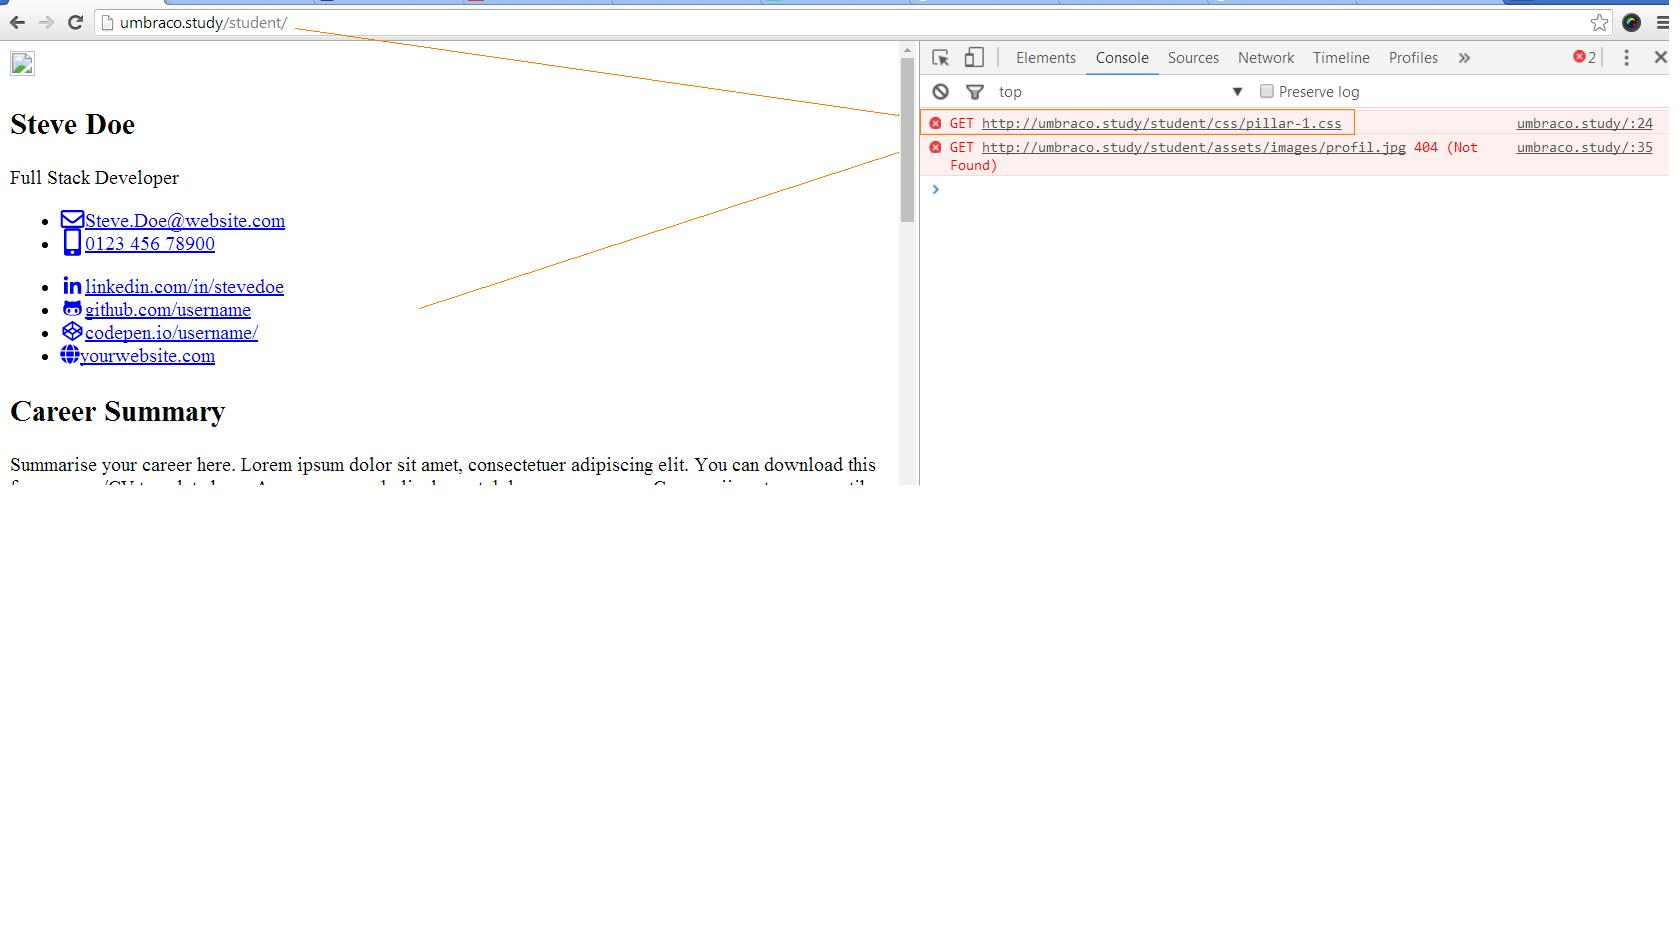 style not applied on subpage v7132 - Using Umbraco and getting